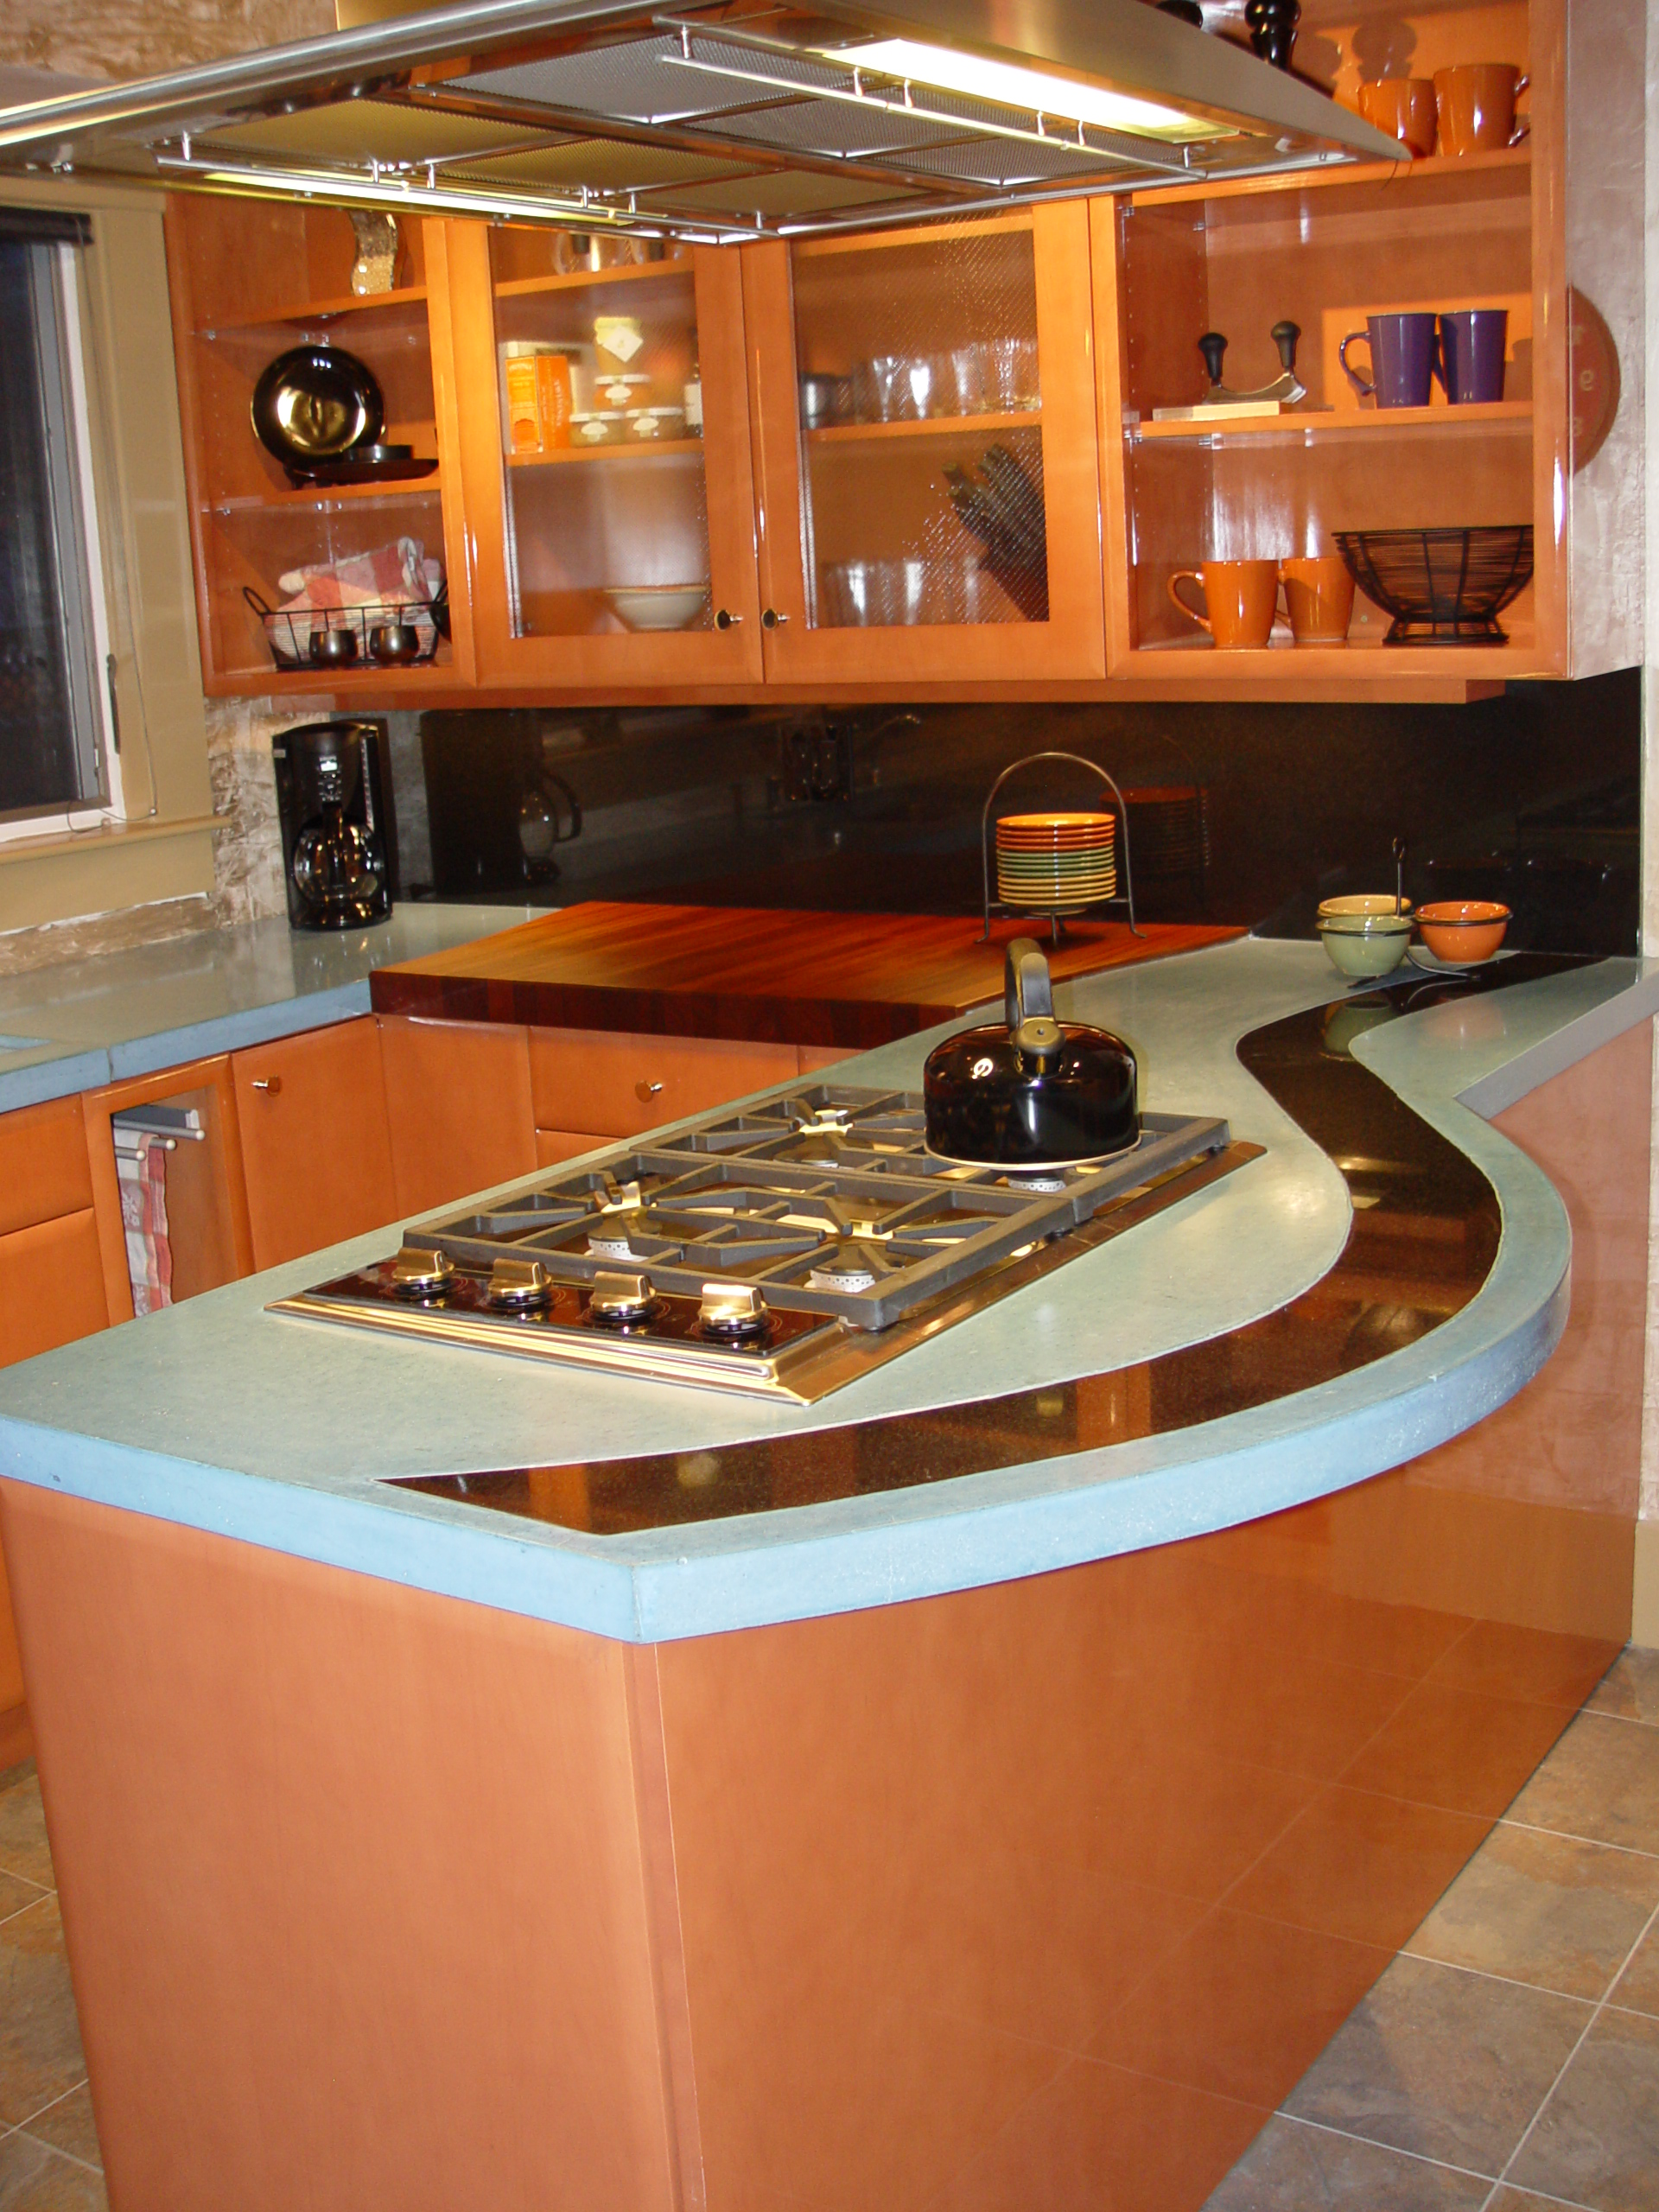 ... Custom Dyed Concrete Countertop With Absolute Black Granite Inlay ,  Custom Shape Mahogany Solid Wood With ...